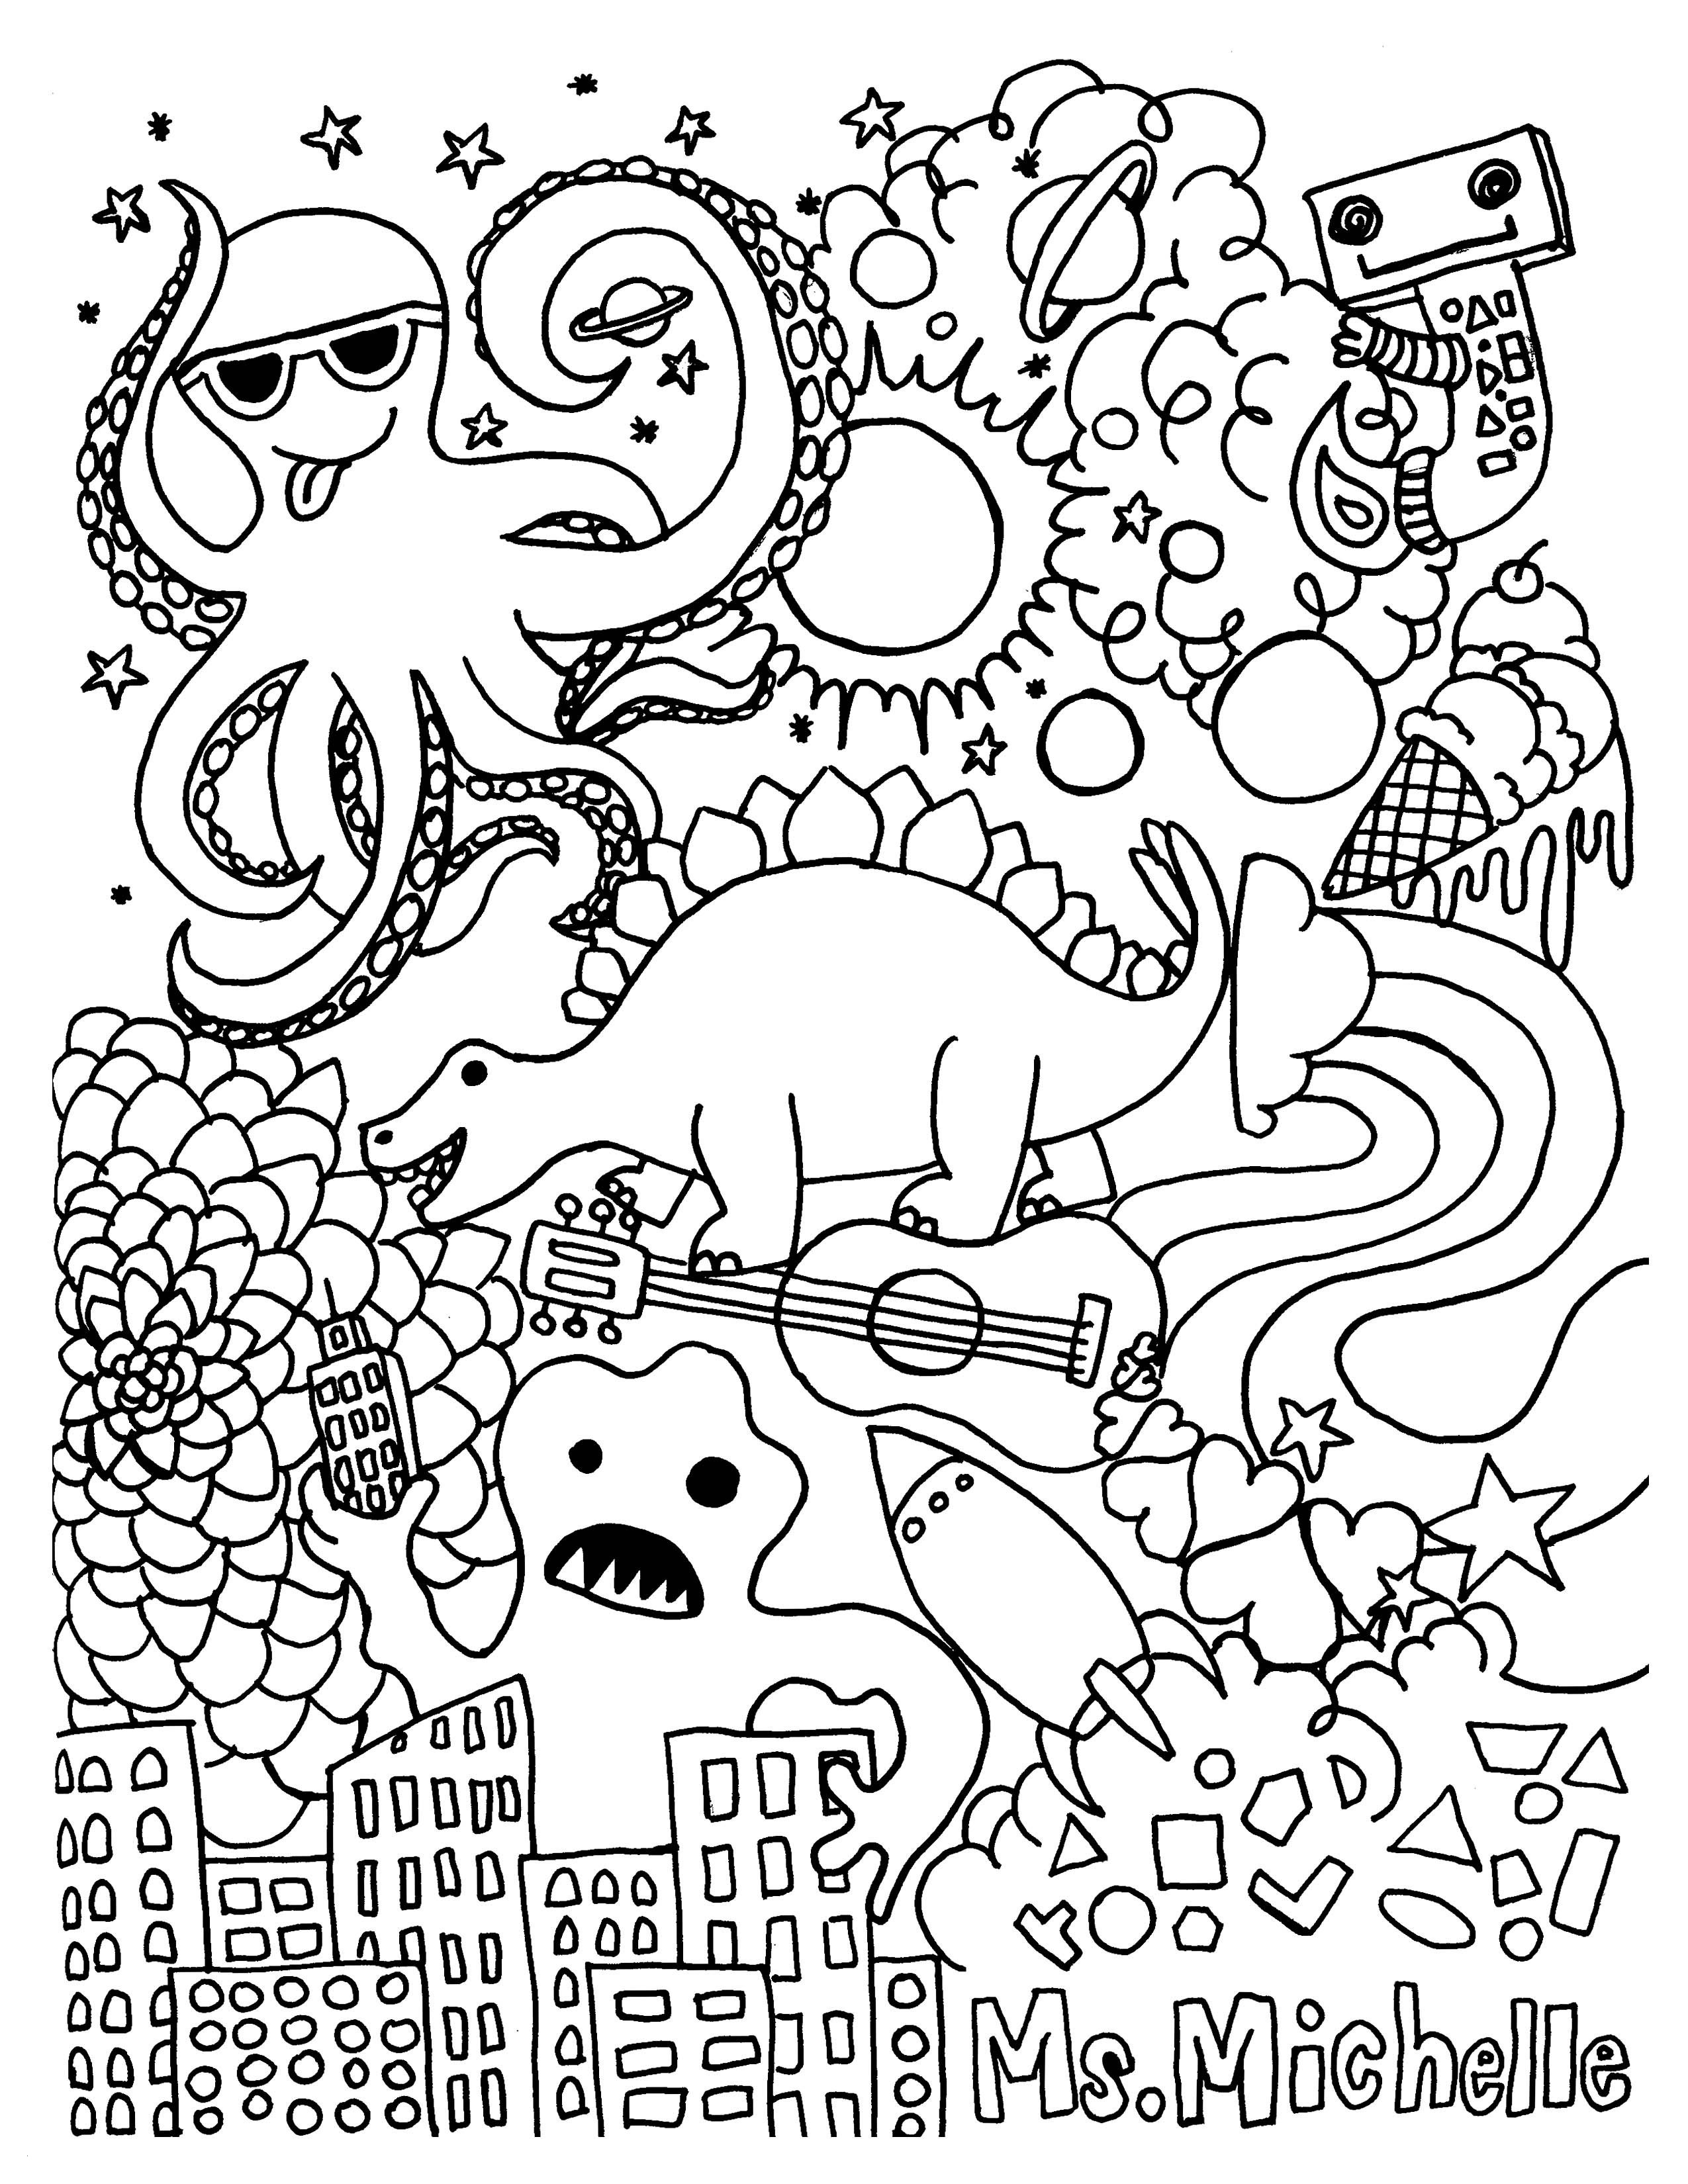 Psychedelic Coloring Pages  Printable 17b - Free For Children